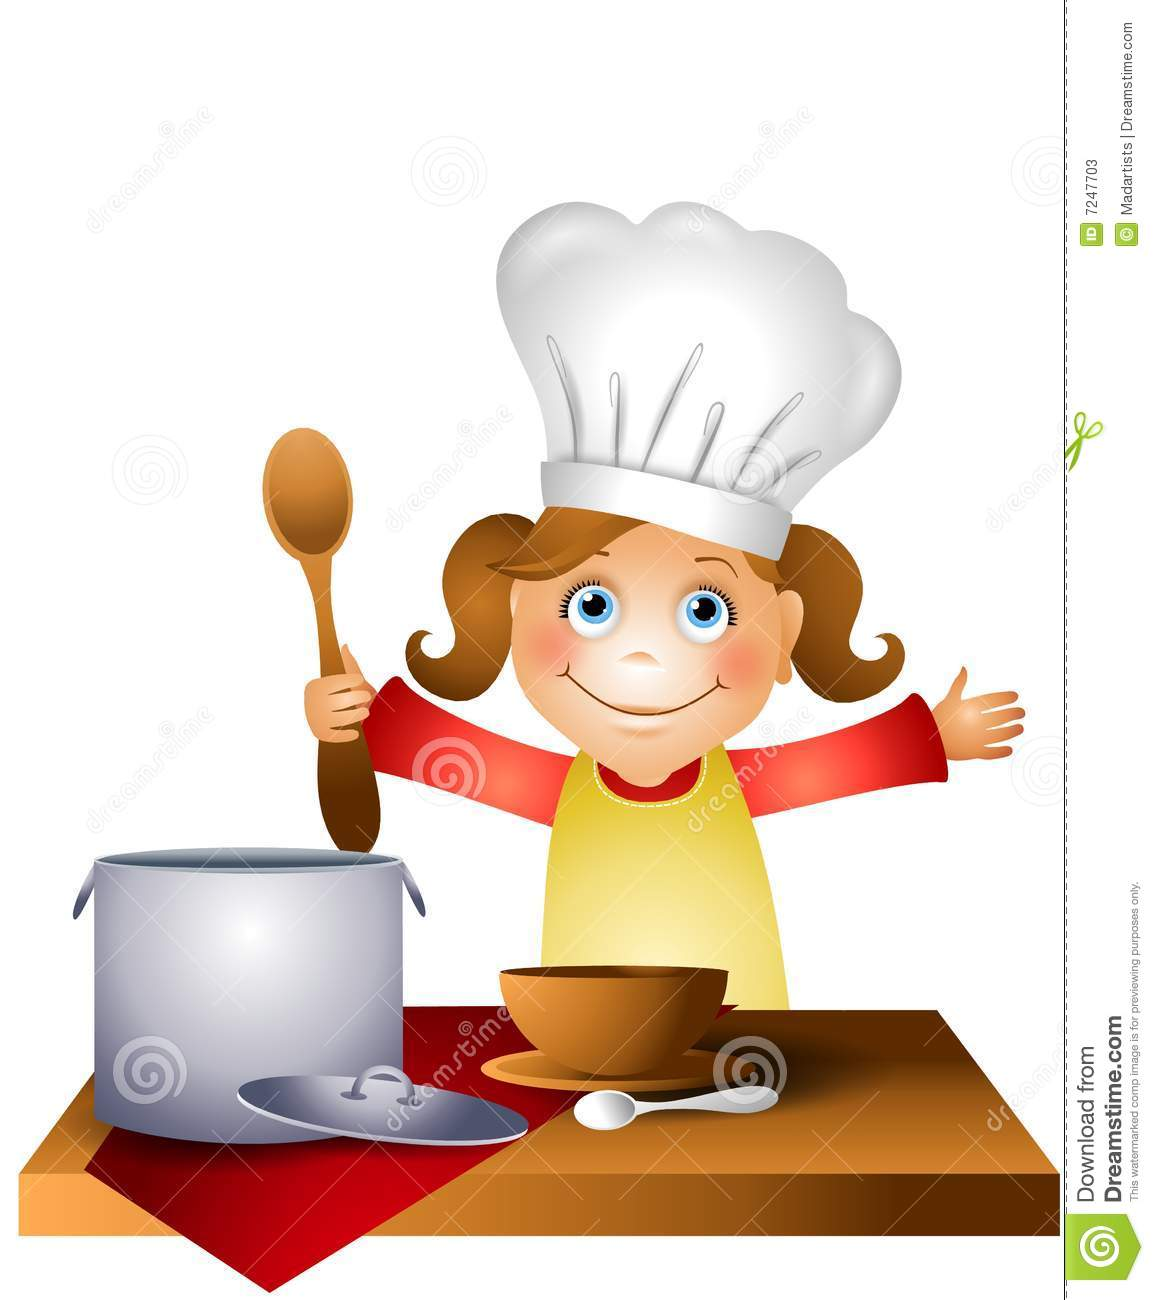 clipart gratuit cuisinier - photo #22